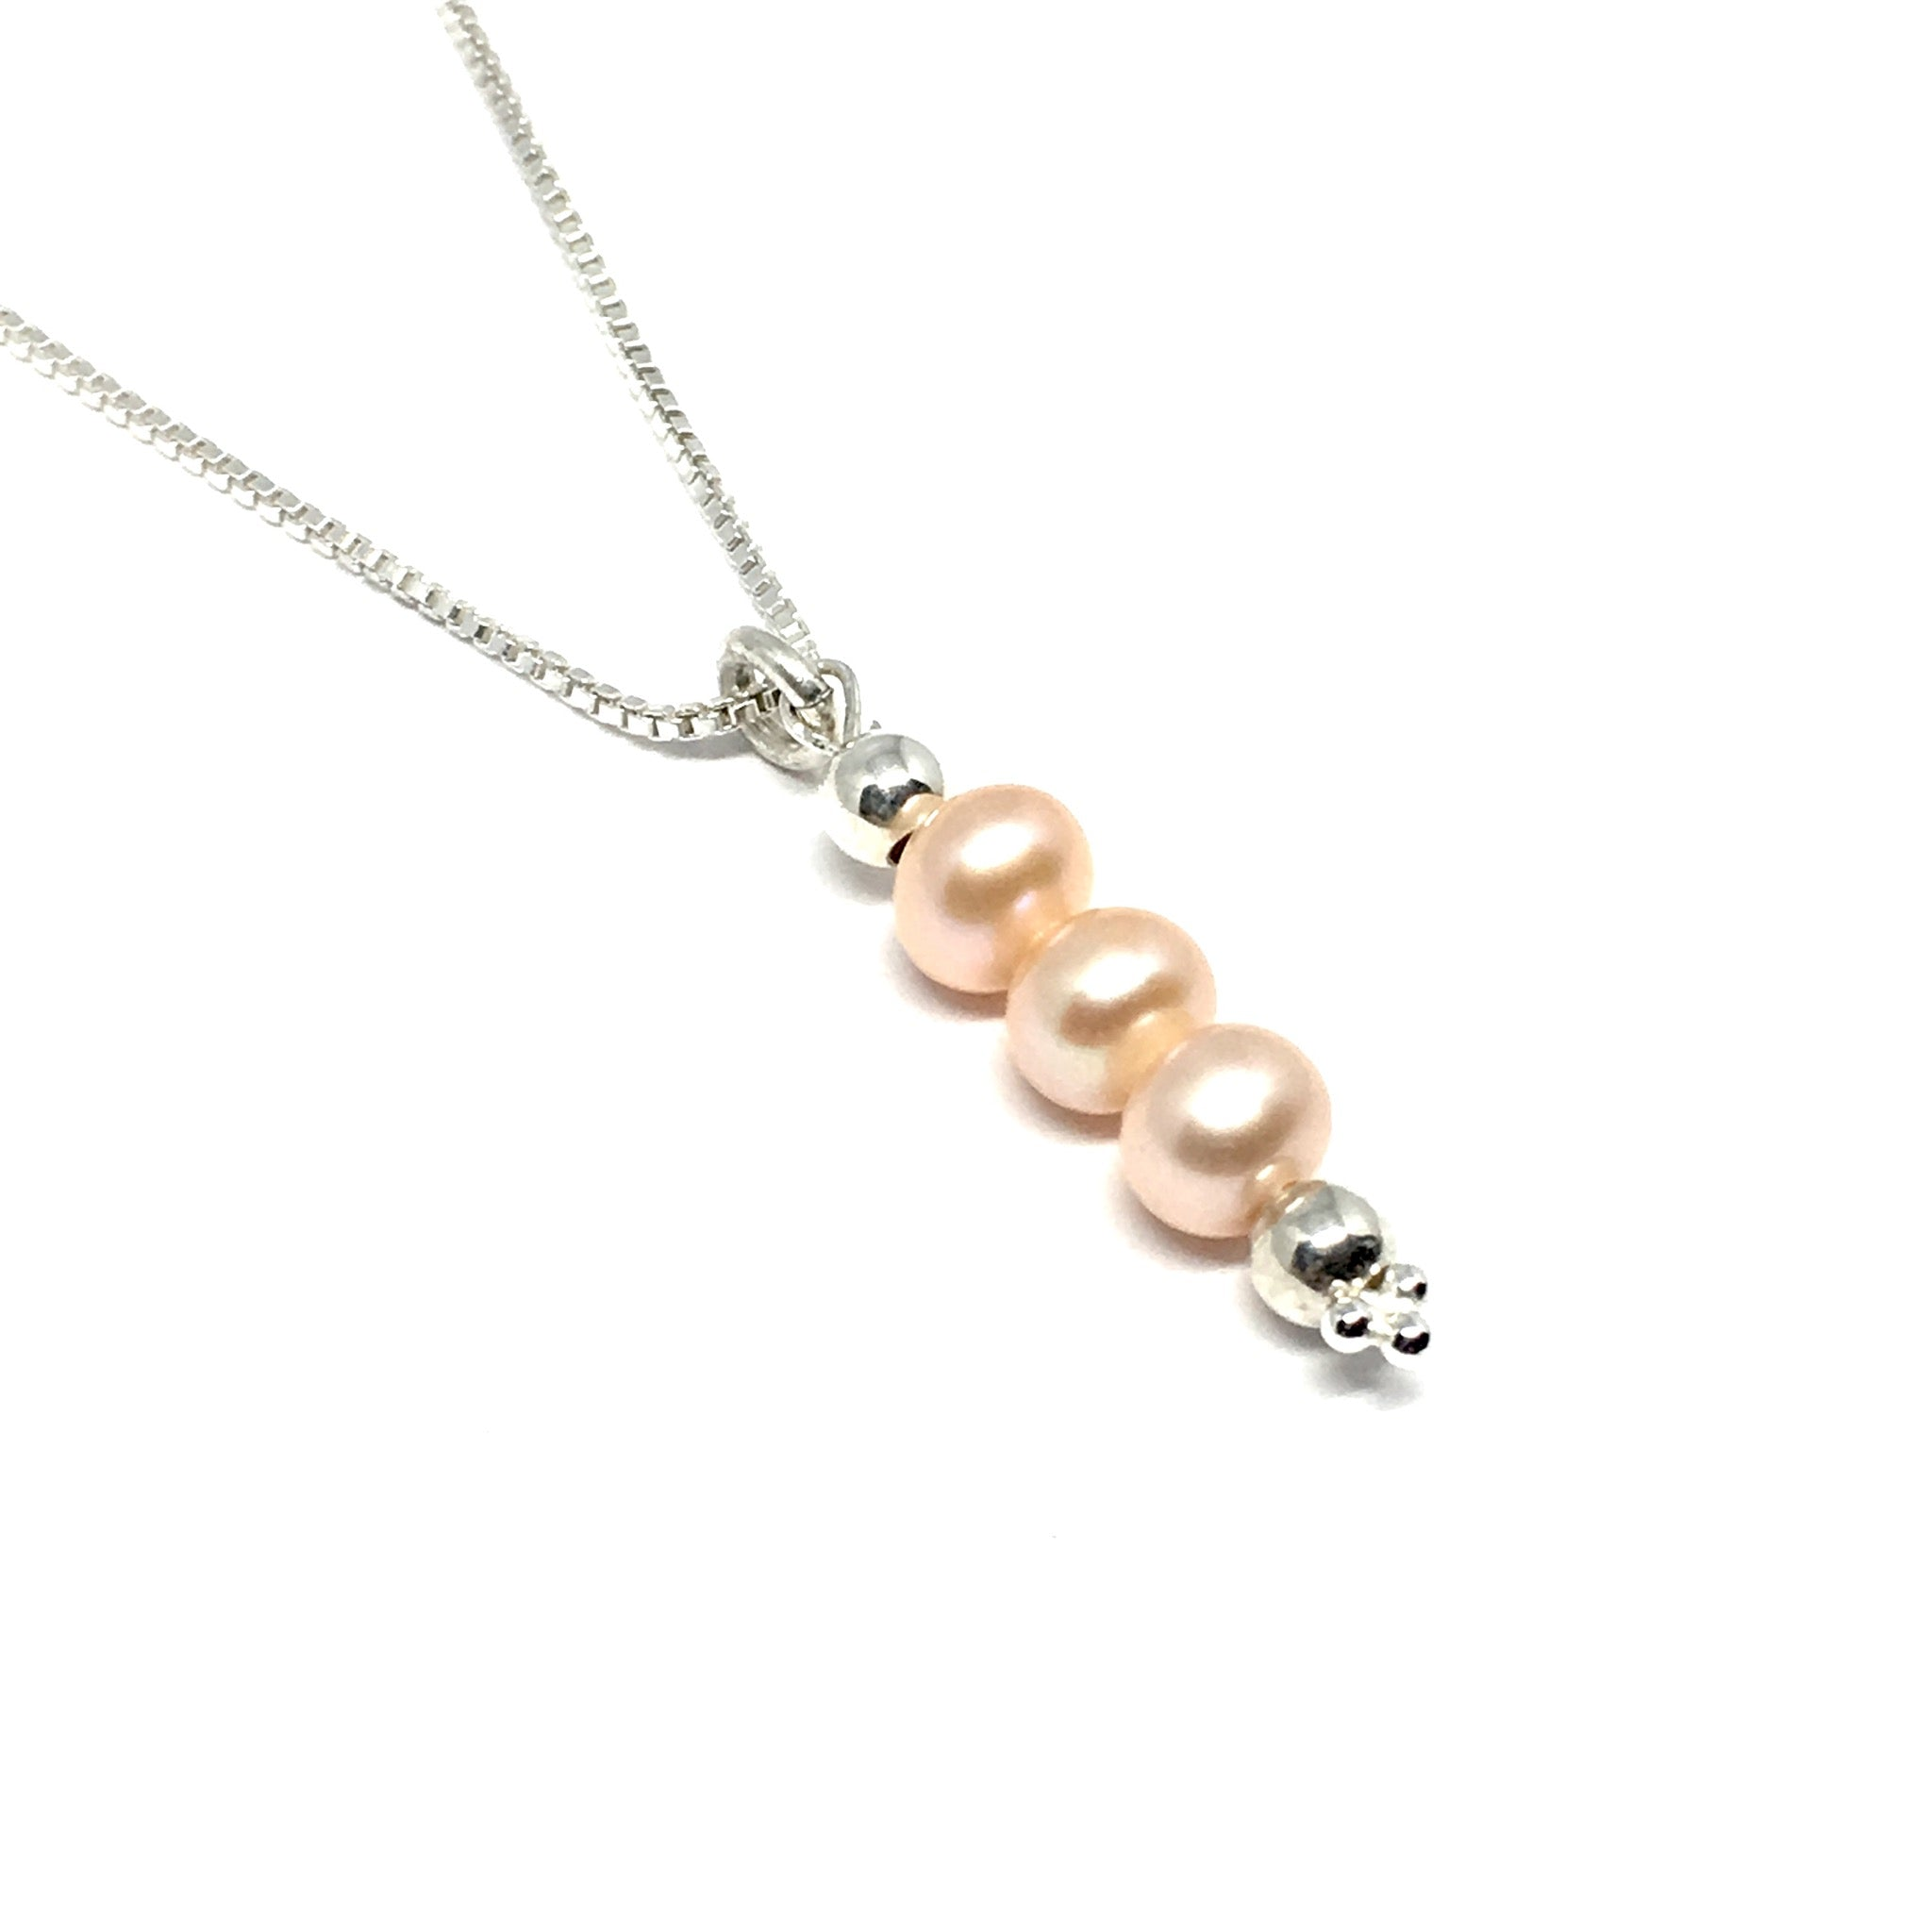 pearls peach weebly baroque sku com store multi freshwater floating natural necklace illusion strand pink